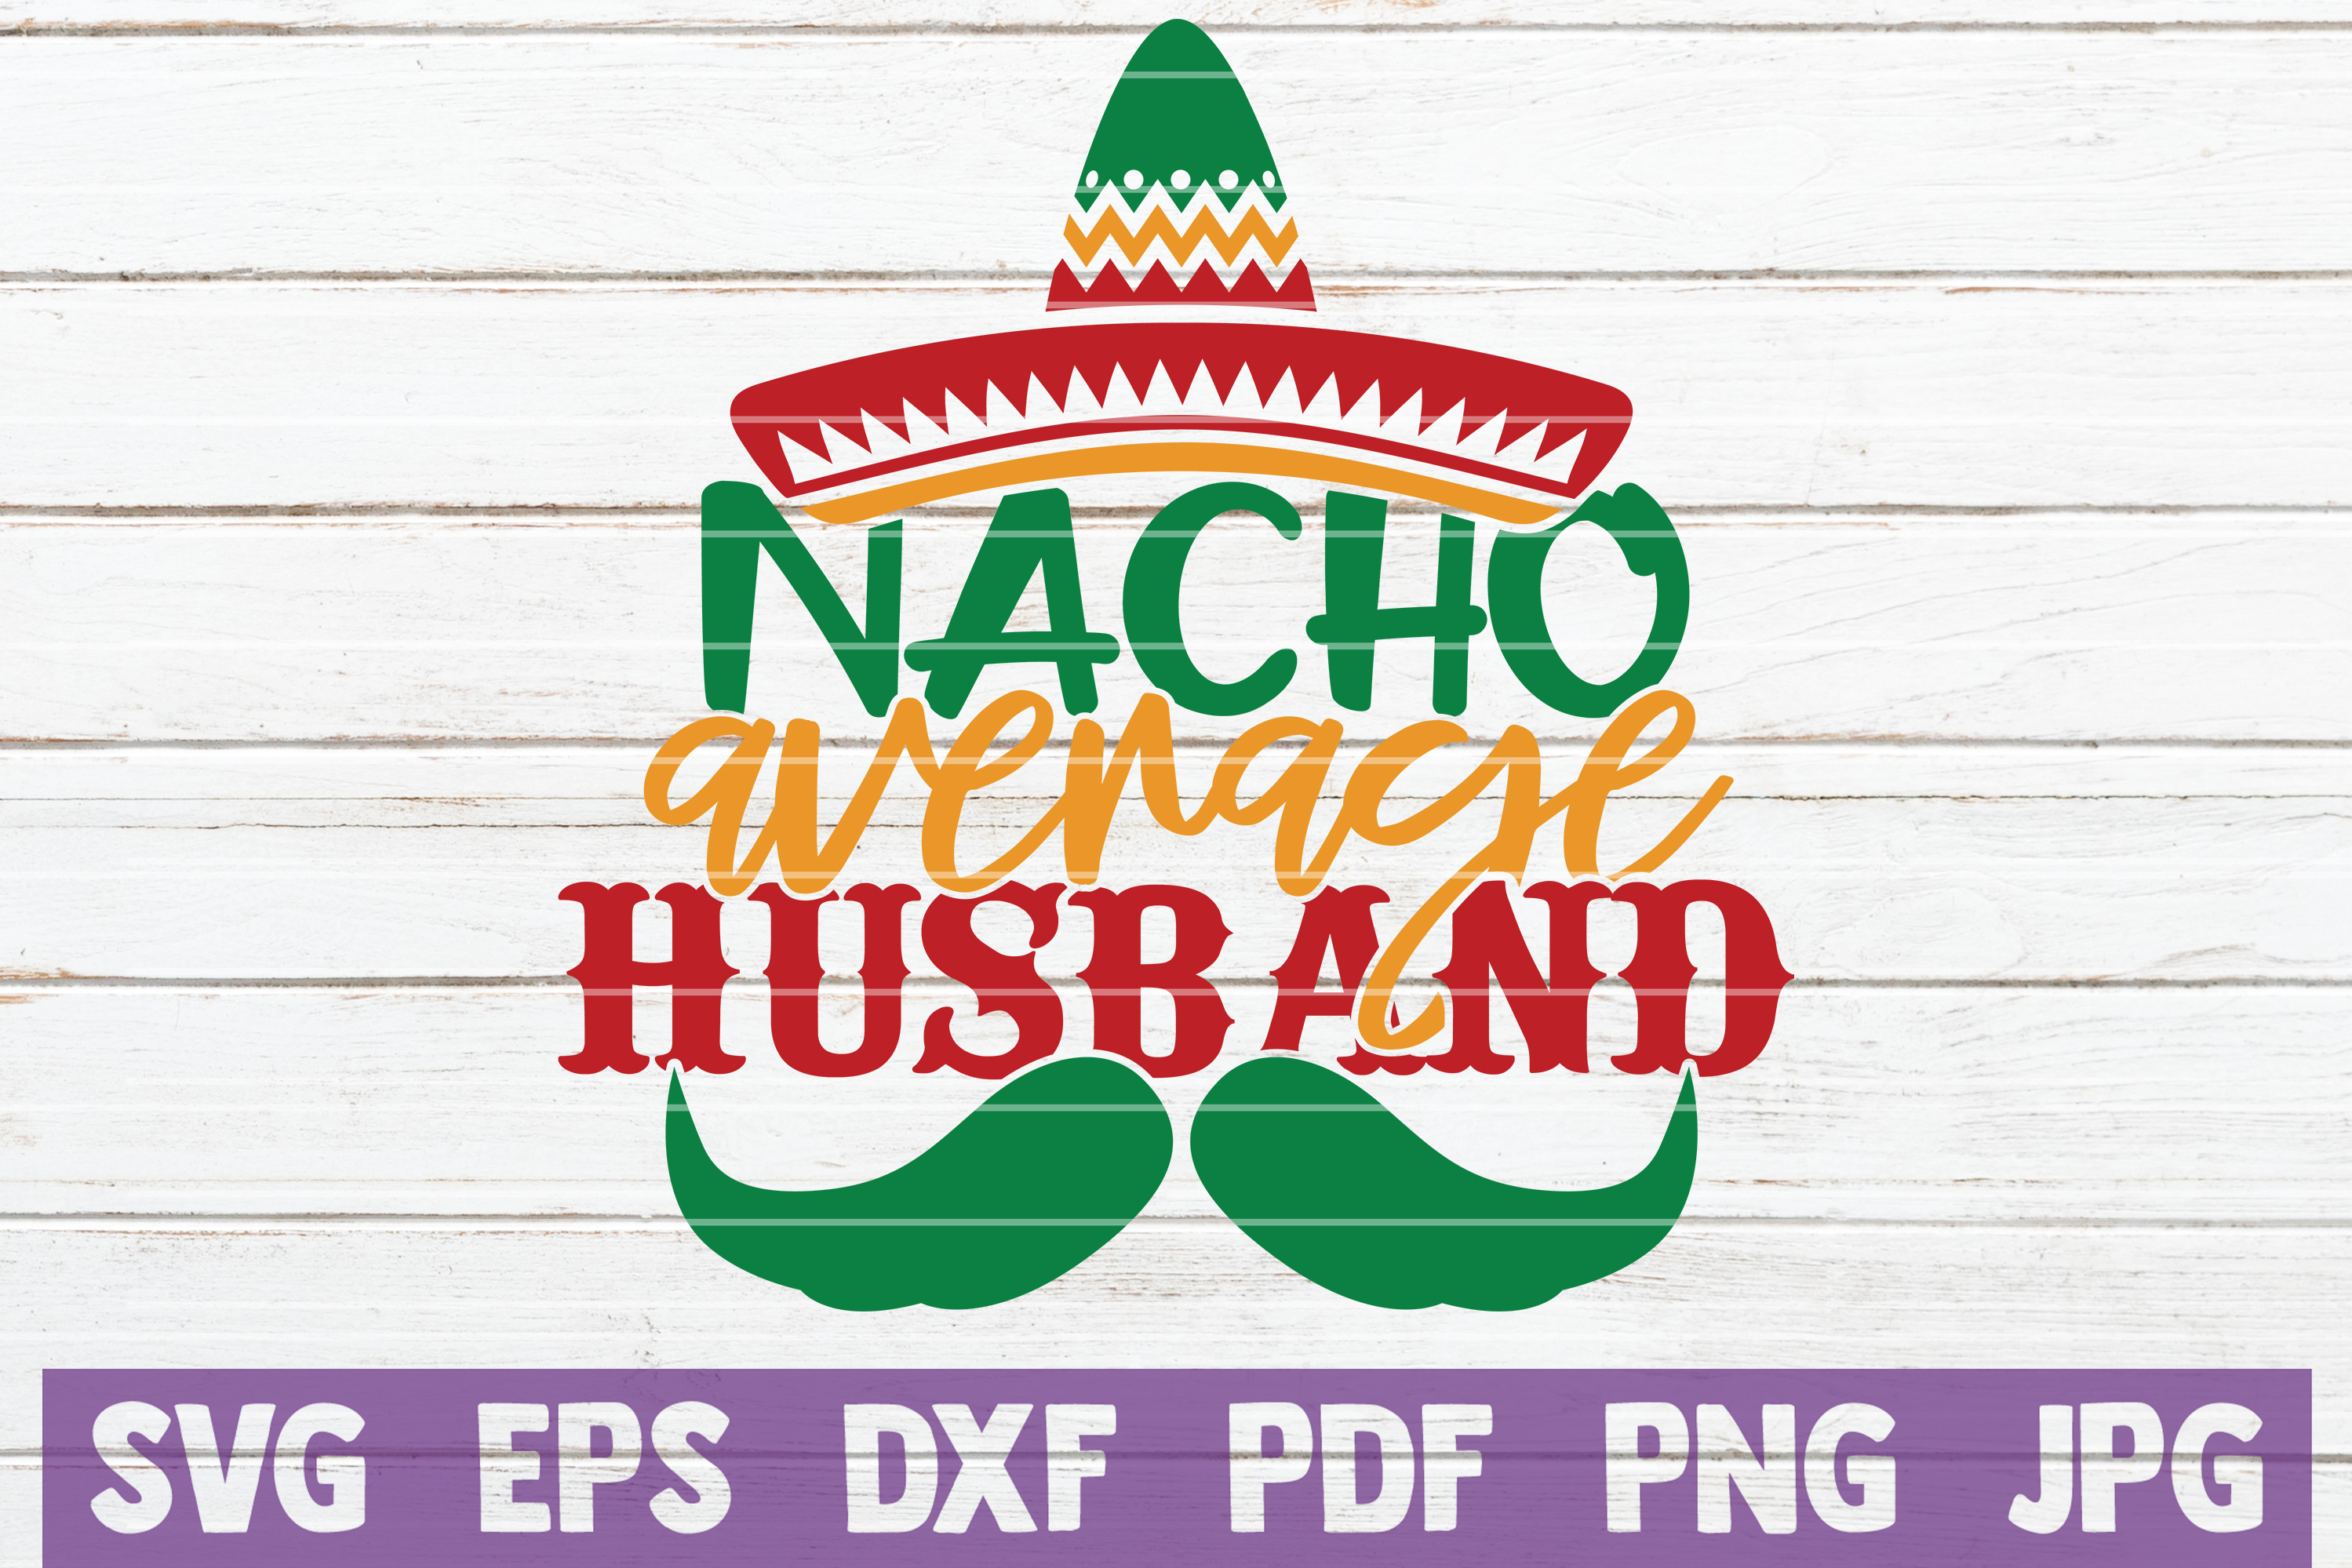 Download Free Nacho Average Husband Graphic By Mintymarshmallows Creative for Cricut Explore, Silhouette and other cutting machines.